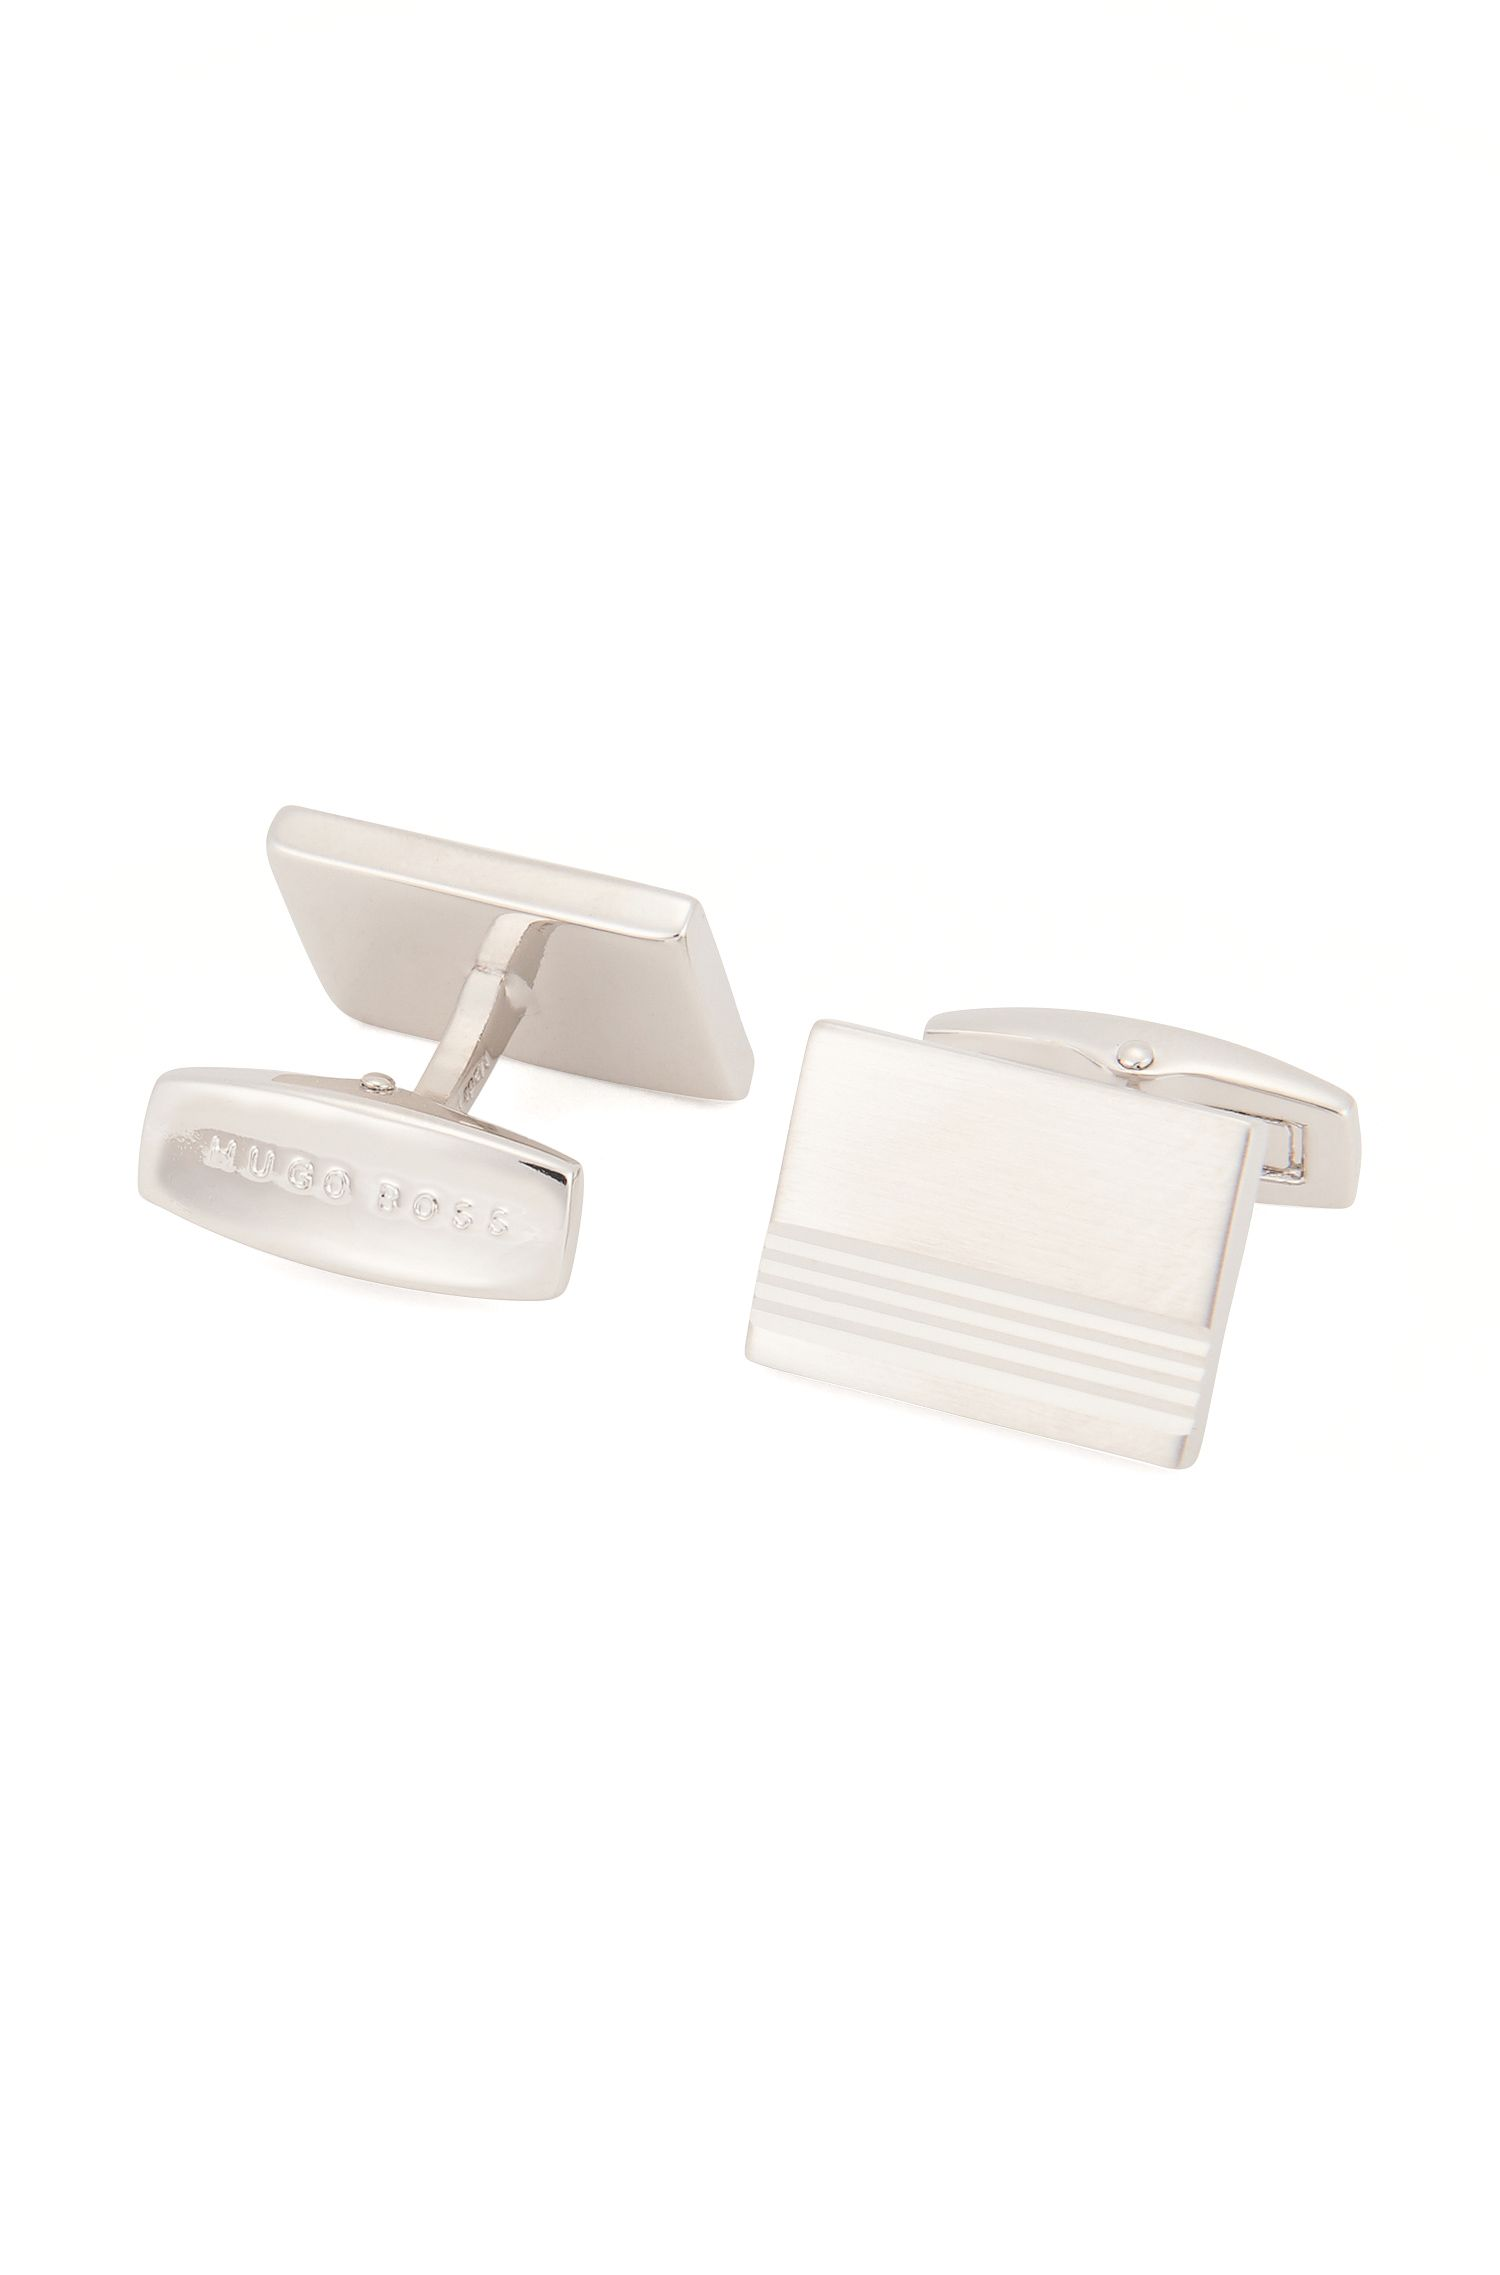 Rectangular cufflinks in brushed metal